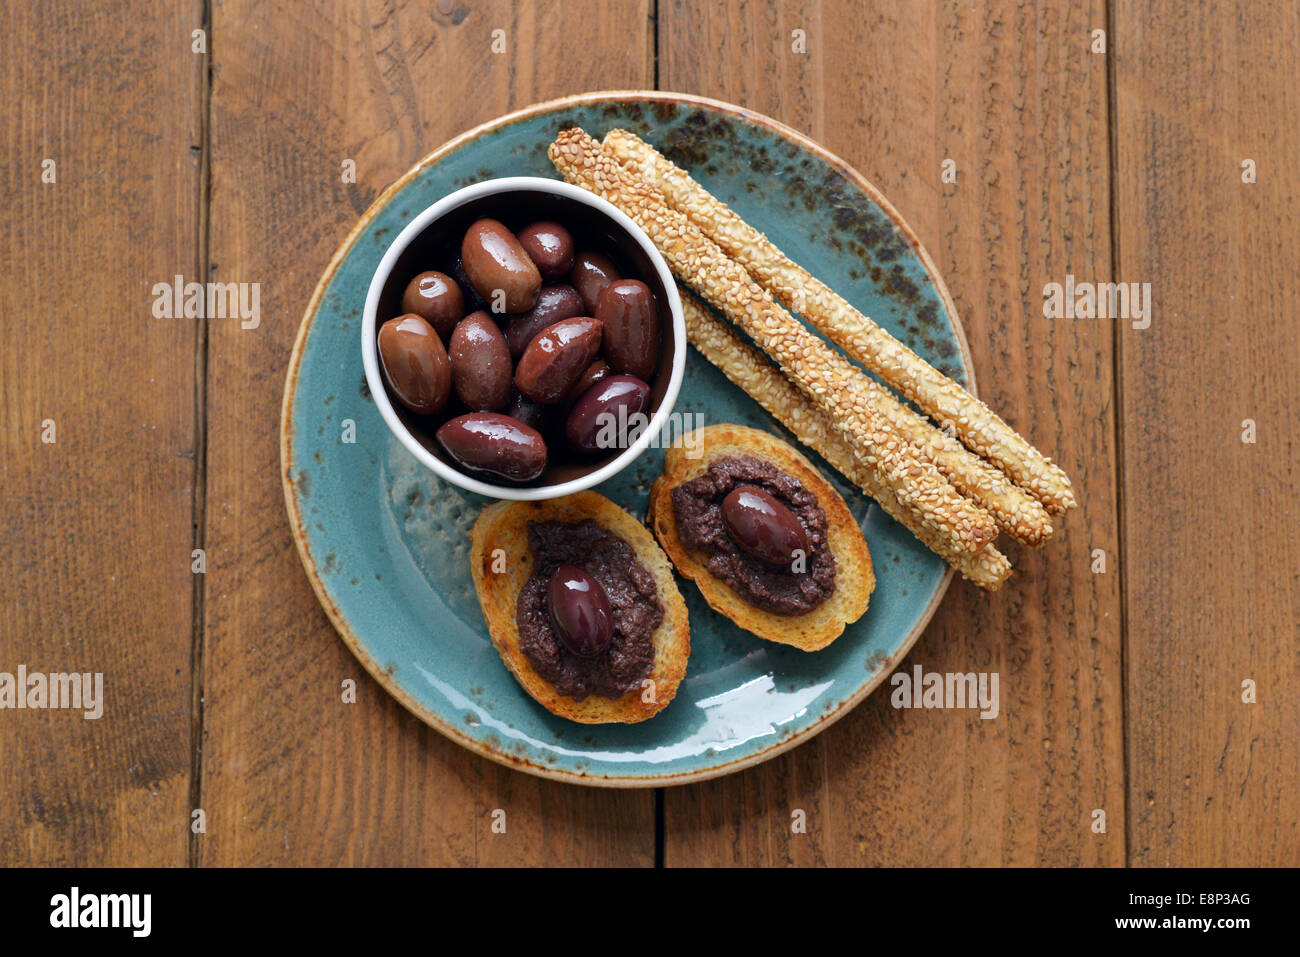 Bread with olive pate on plate closeup. Greek cuisine - Stock Image